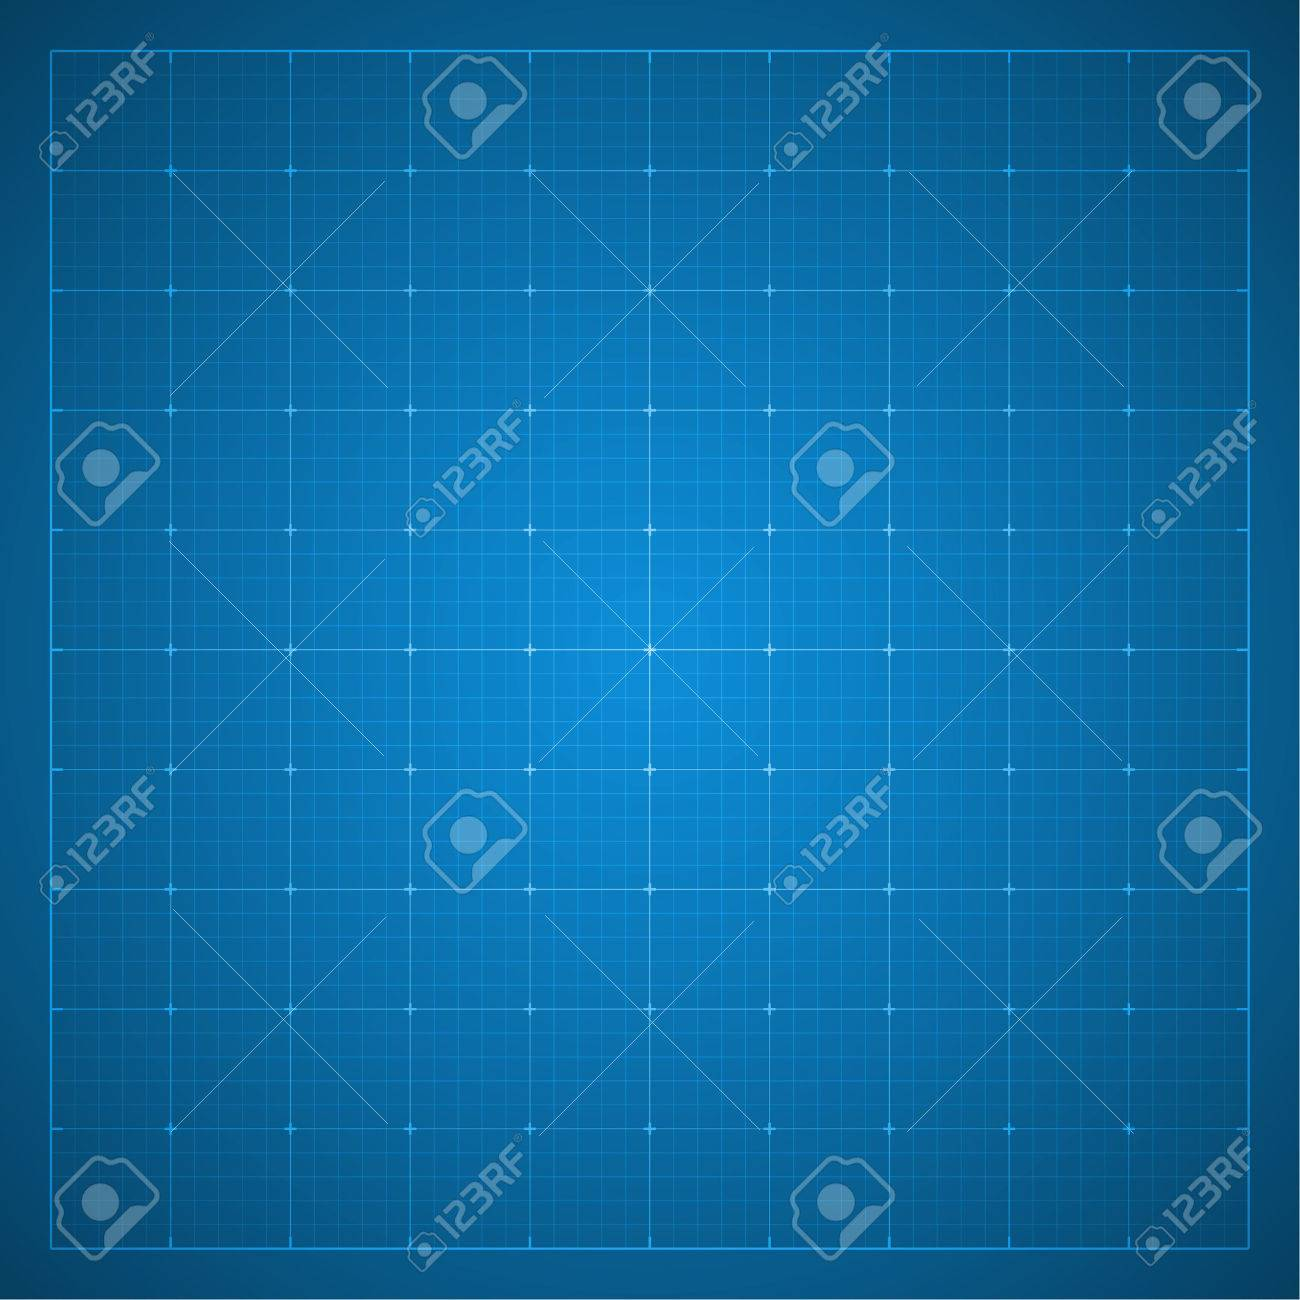 Paper blueprint background drawing paper for architectural paper blueprint background drawing paper for architectural engineering design work vector stock vector malvernweather Images